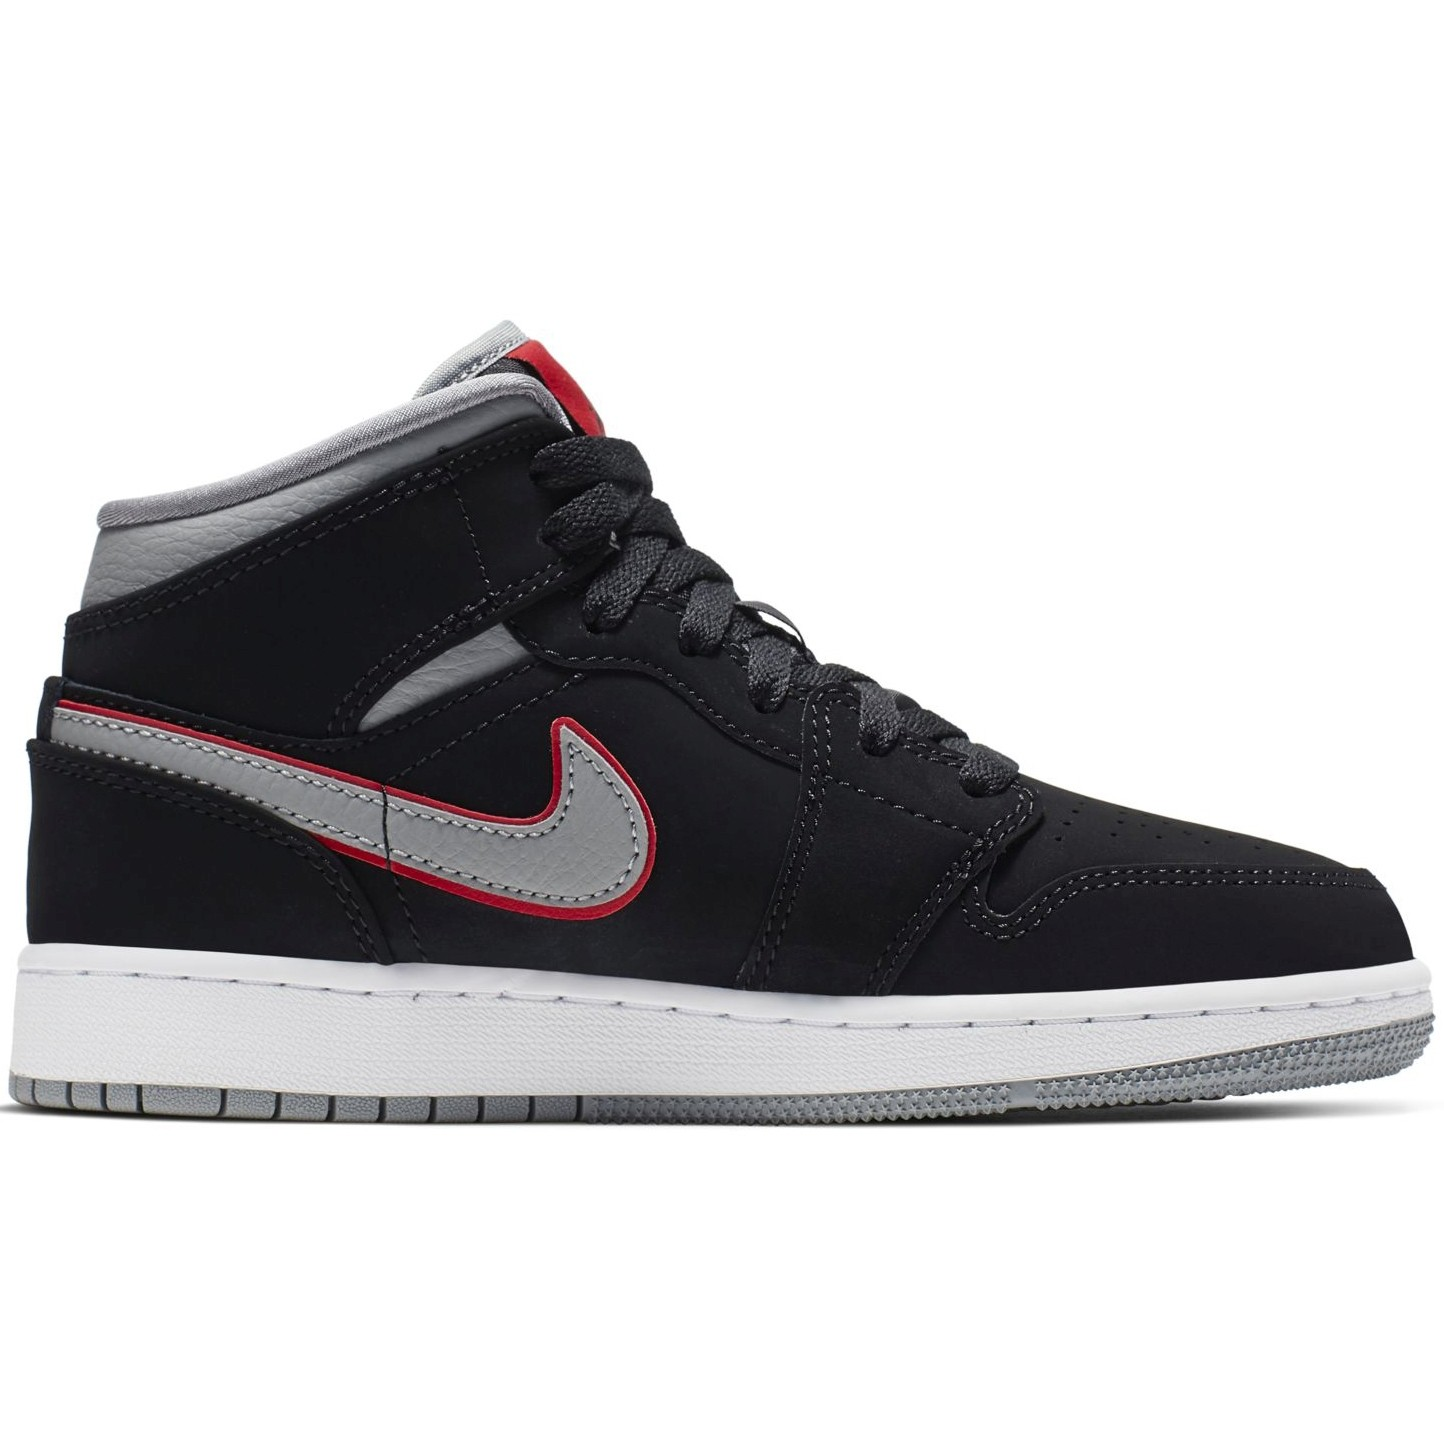 Nike Air Jordan 1 Mid GS Black Particle Grey Gym Red - Laisvalaikio batai